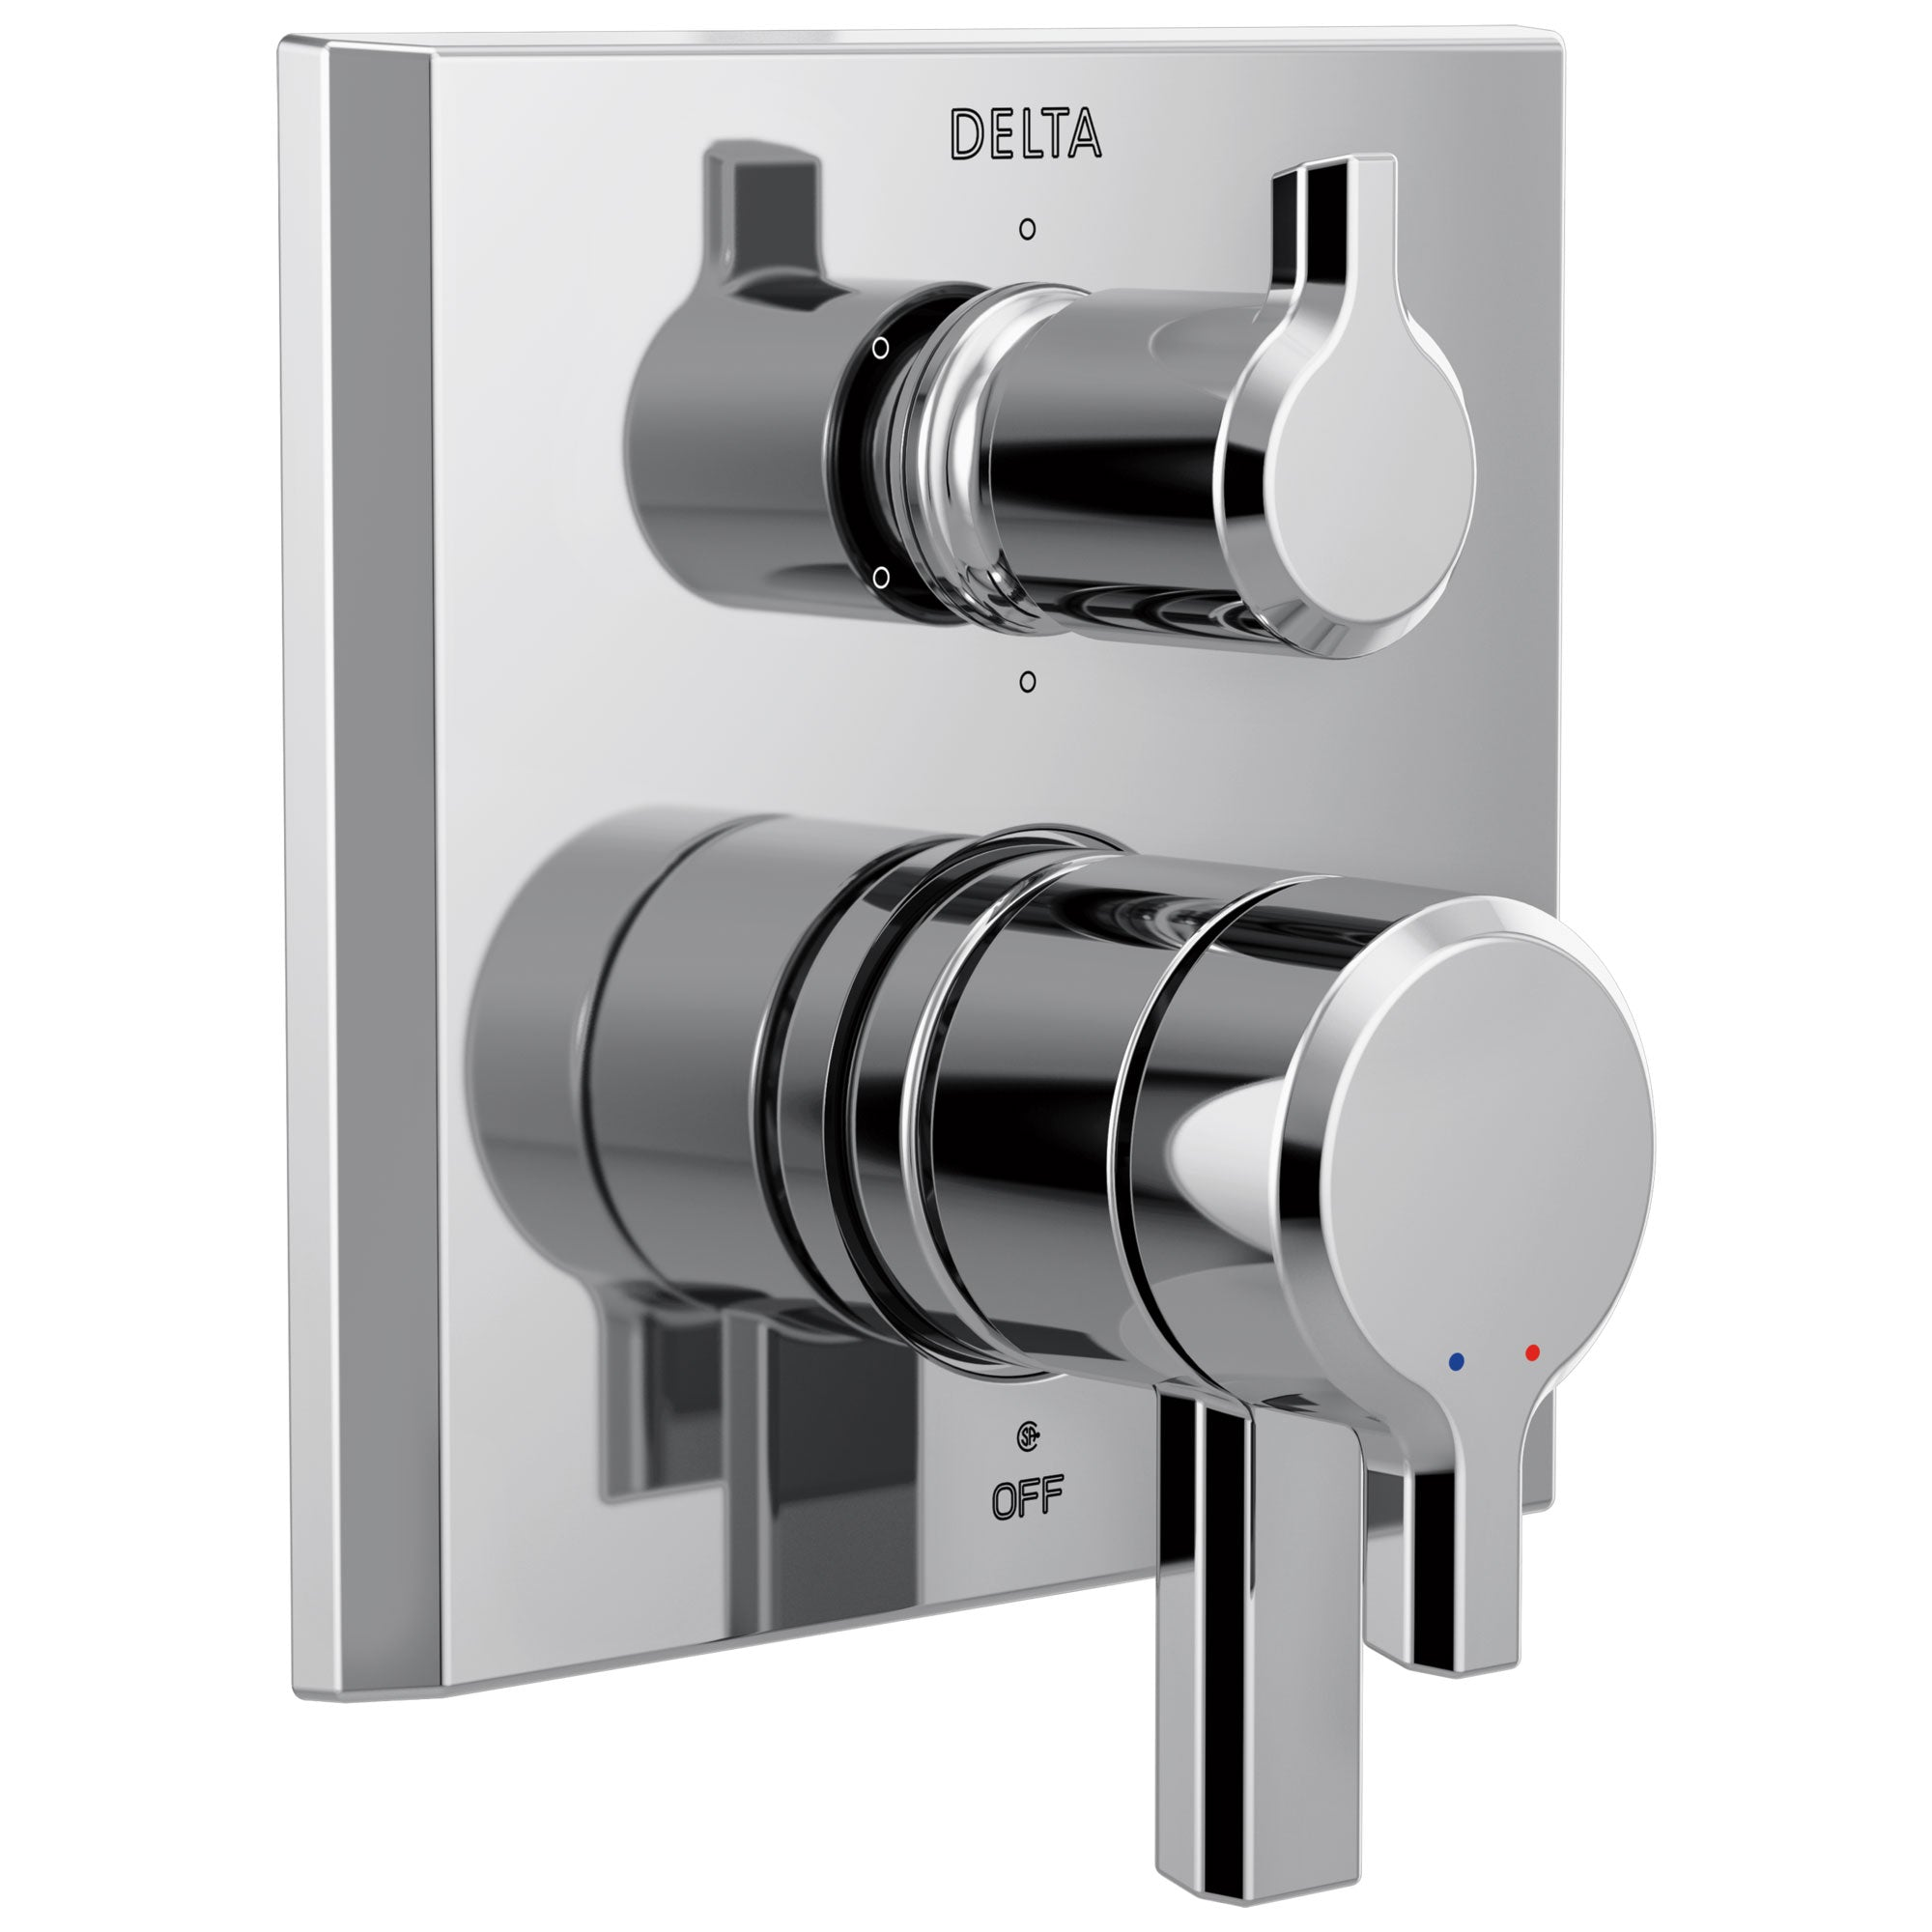 Delta Pivotal Chrome Finish Monitor 17 Series Shower System Control with 6-Setting Diverter Includes Rough-in Valve and Handles D3115V